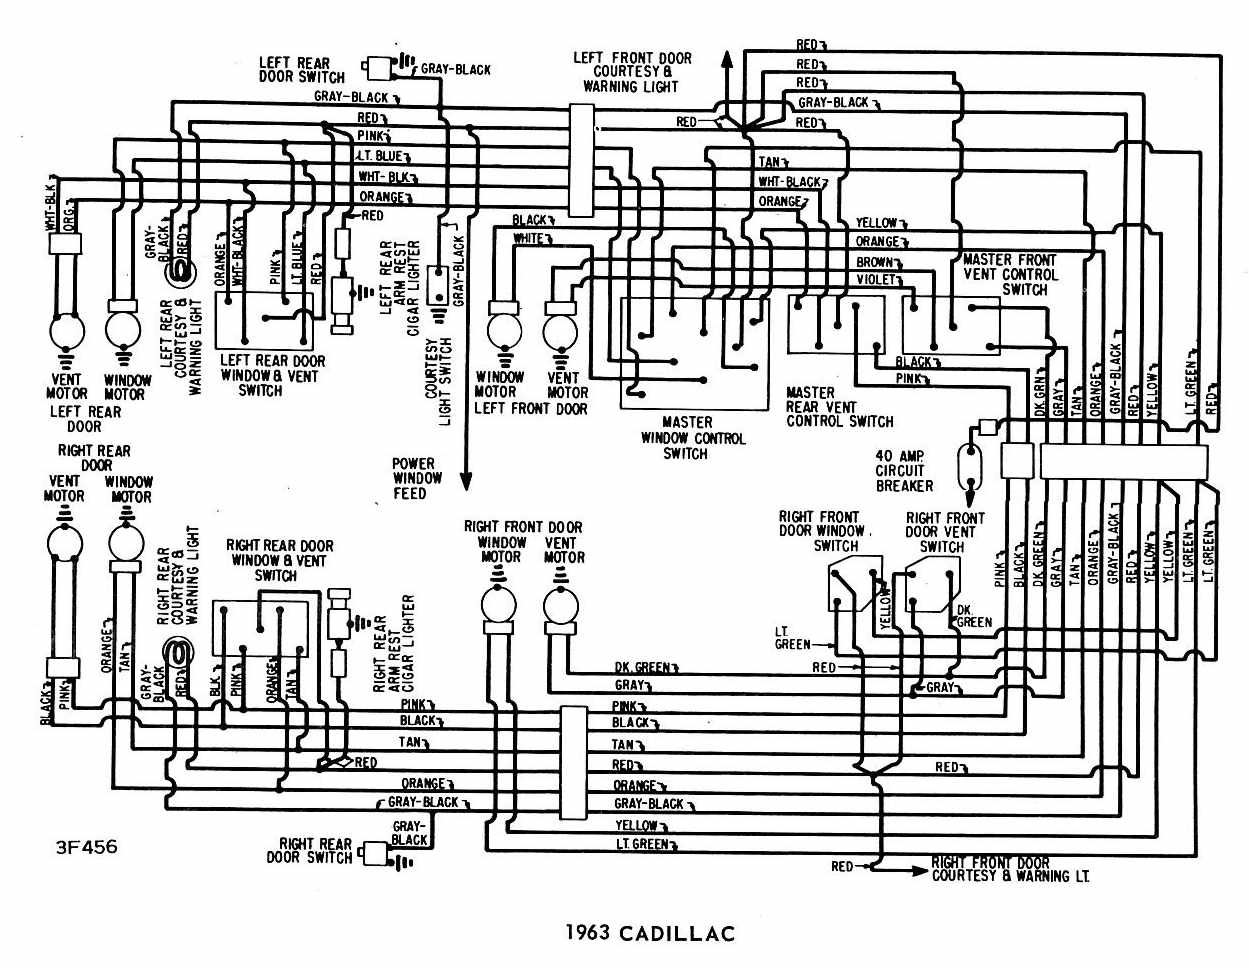 Cadillac+1963+Windows+Wiring+Diagram cadillac 1963 windows wiring diagram all about wiring diagrams 1963 impala electrical diagram at soozxer.org